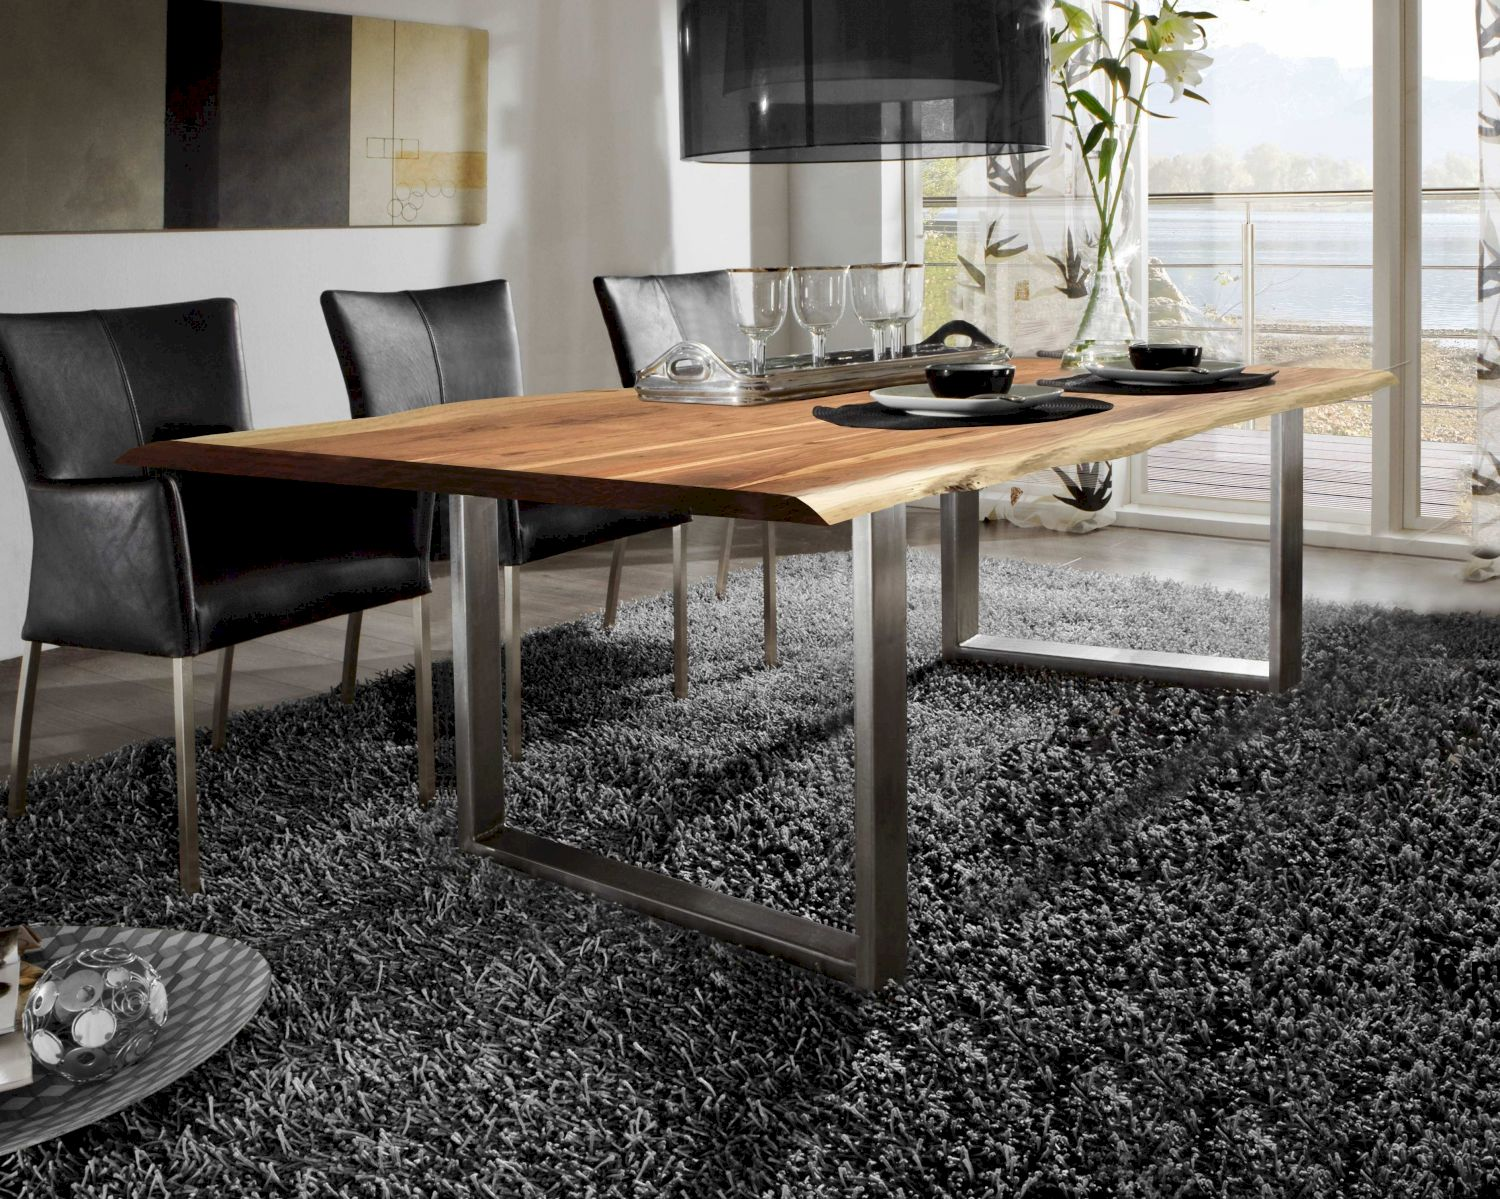 Sit tops tables baumkante esstisch bei for Design esstisch holz